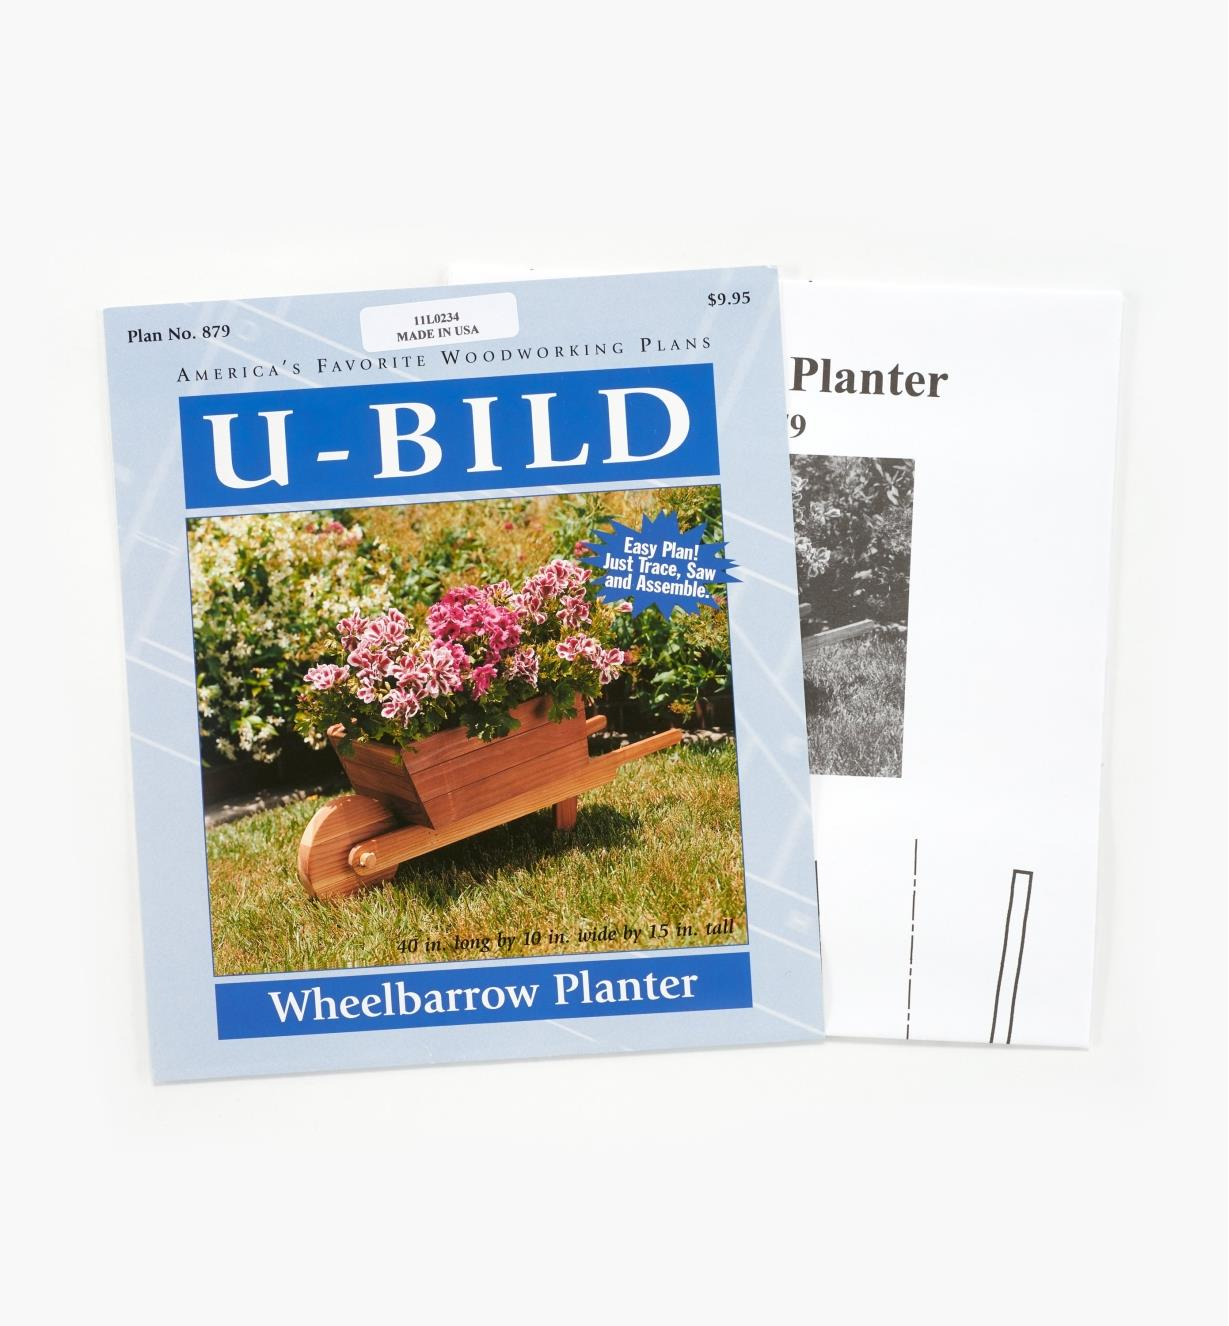 11L0234 - Wheelbarrow Planter Plan